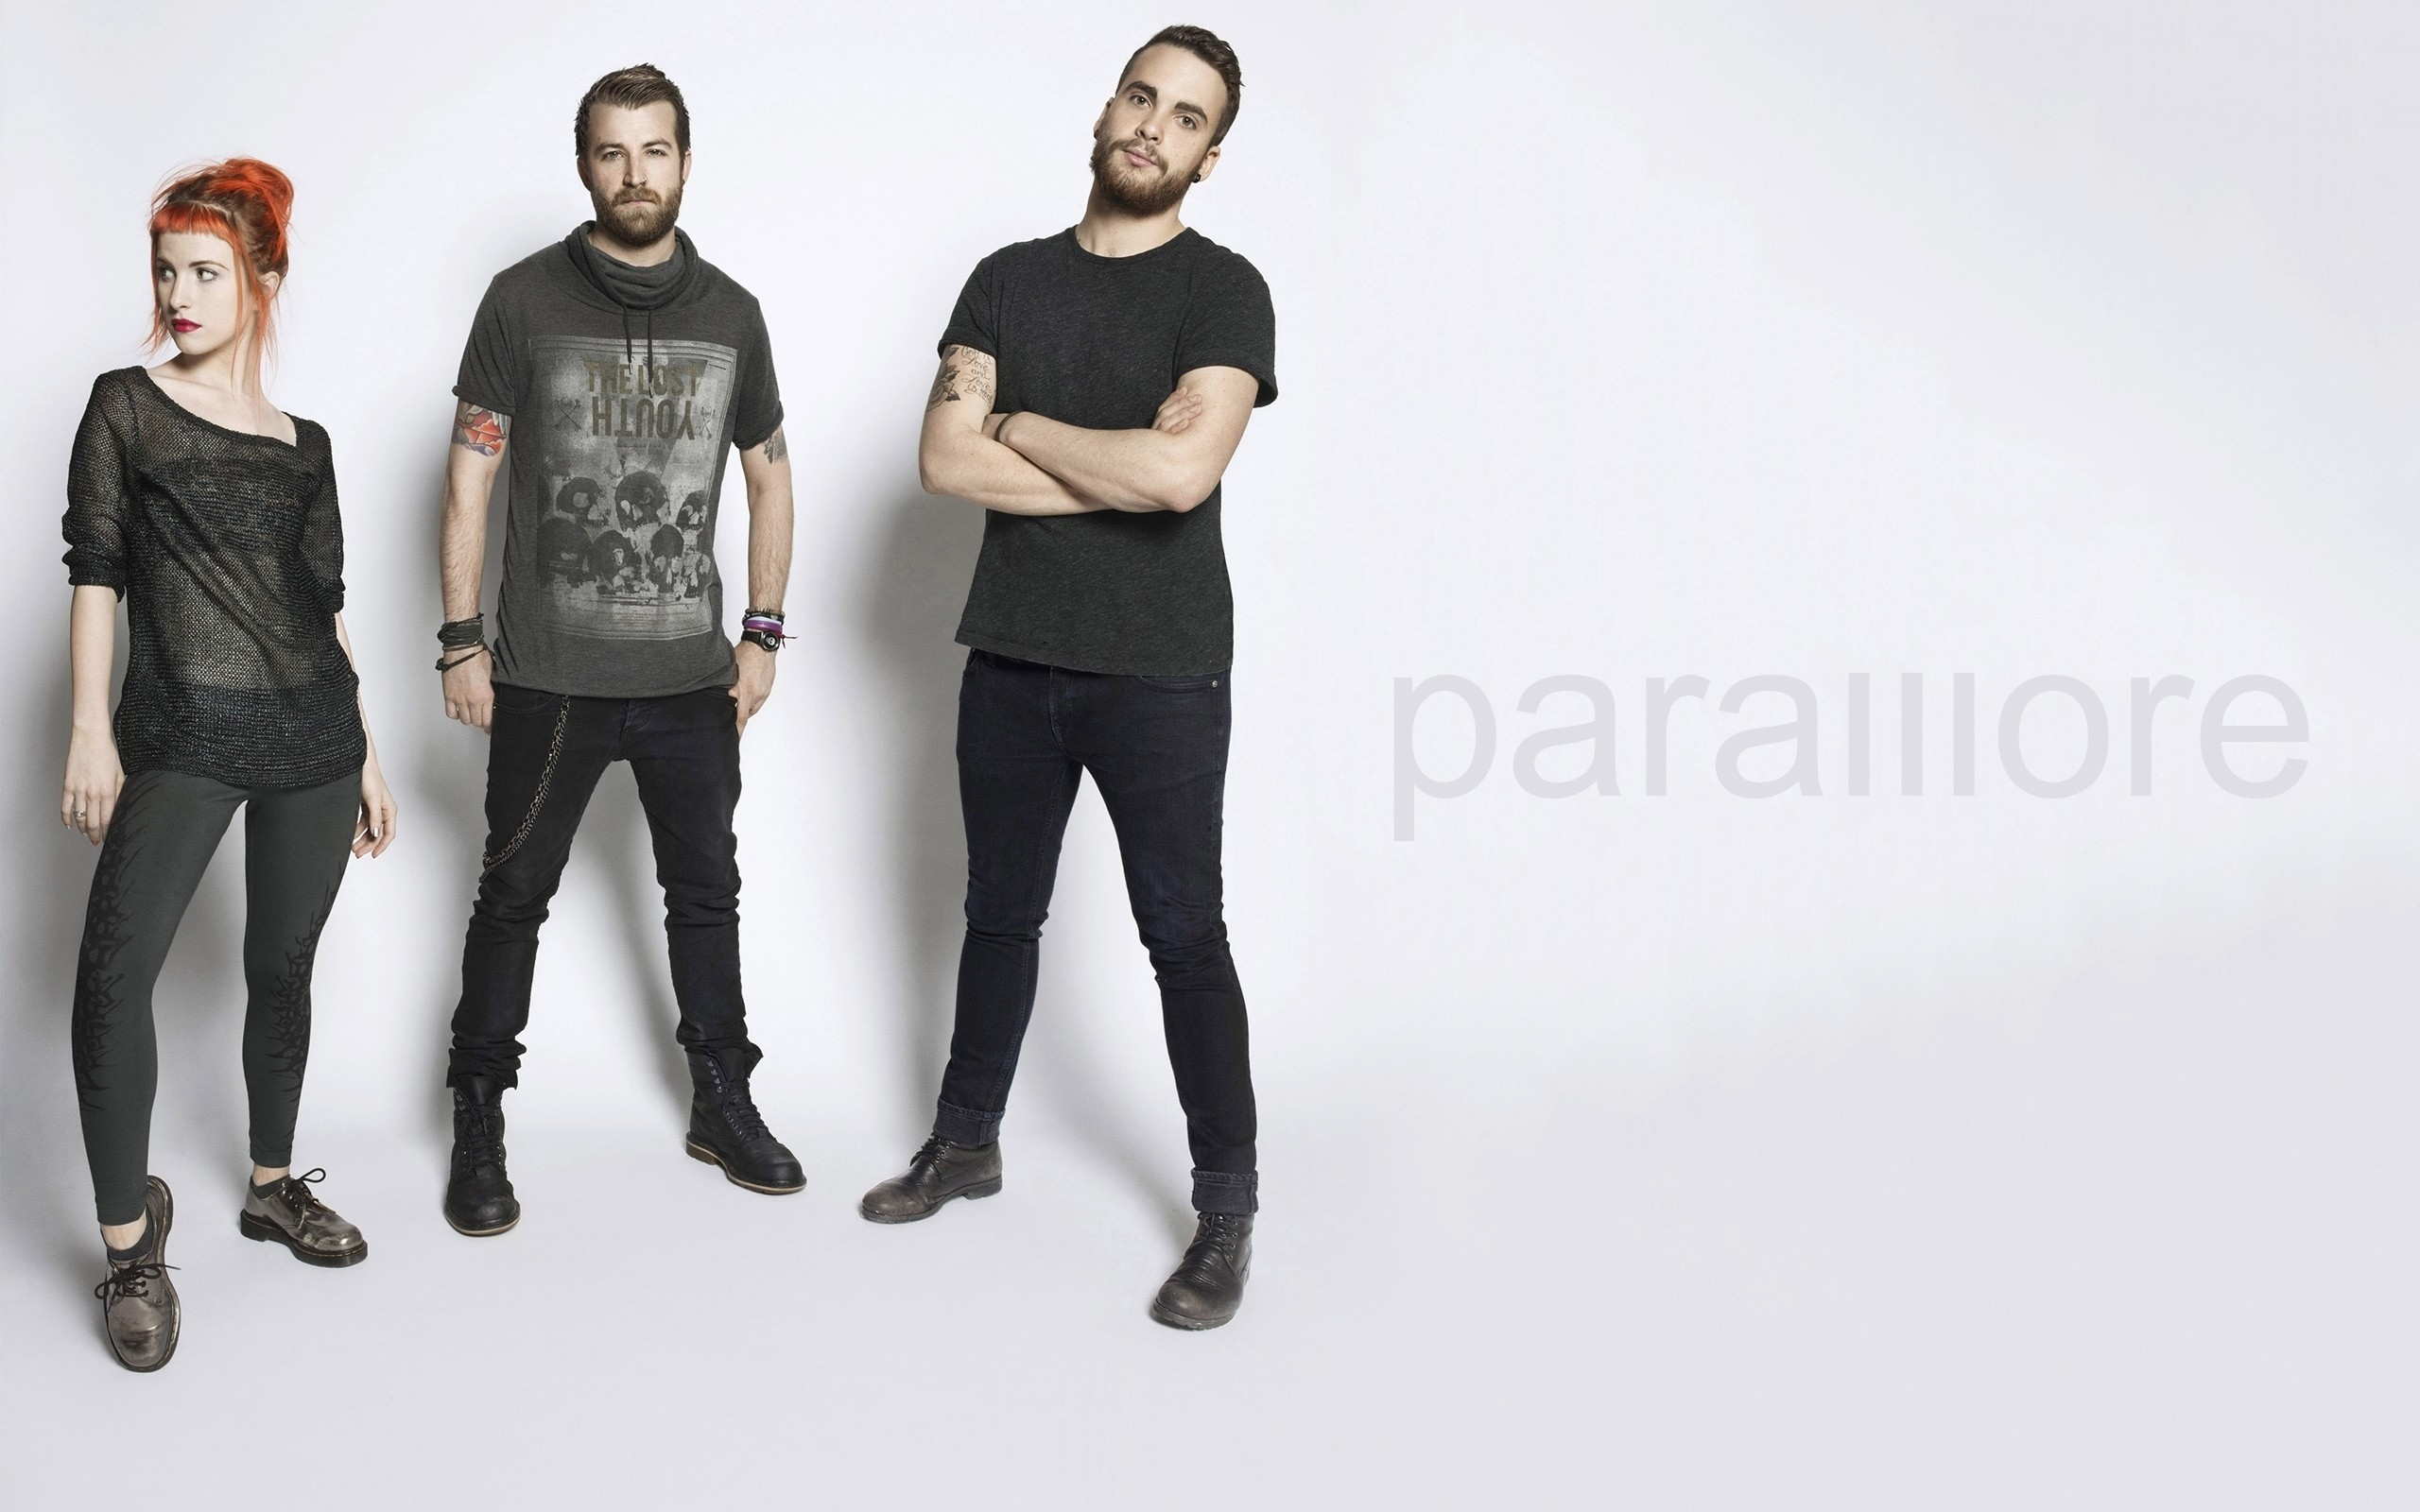 2560x1600 Paramore HD Wallpaper | Background Image |  | ID:477512 - Wallpaper  Abyss